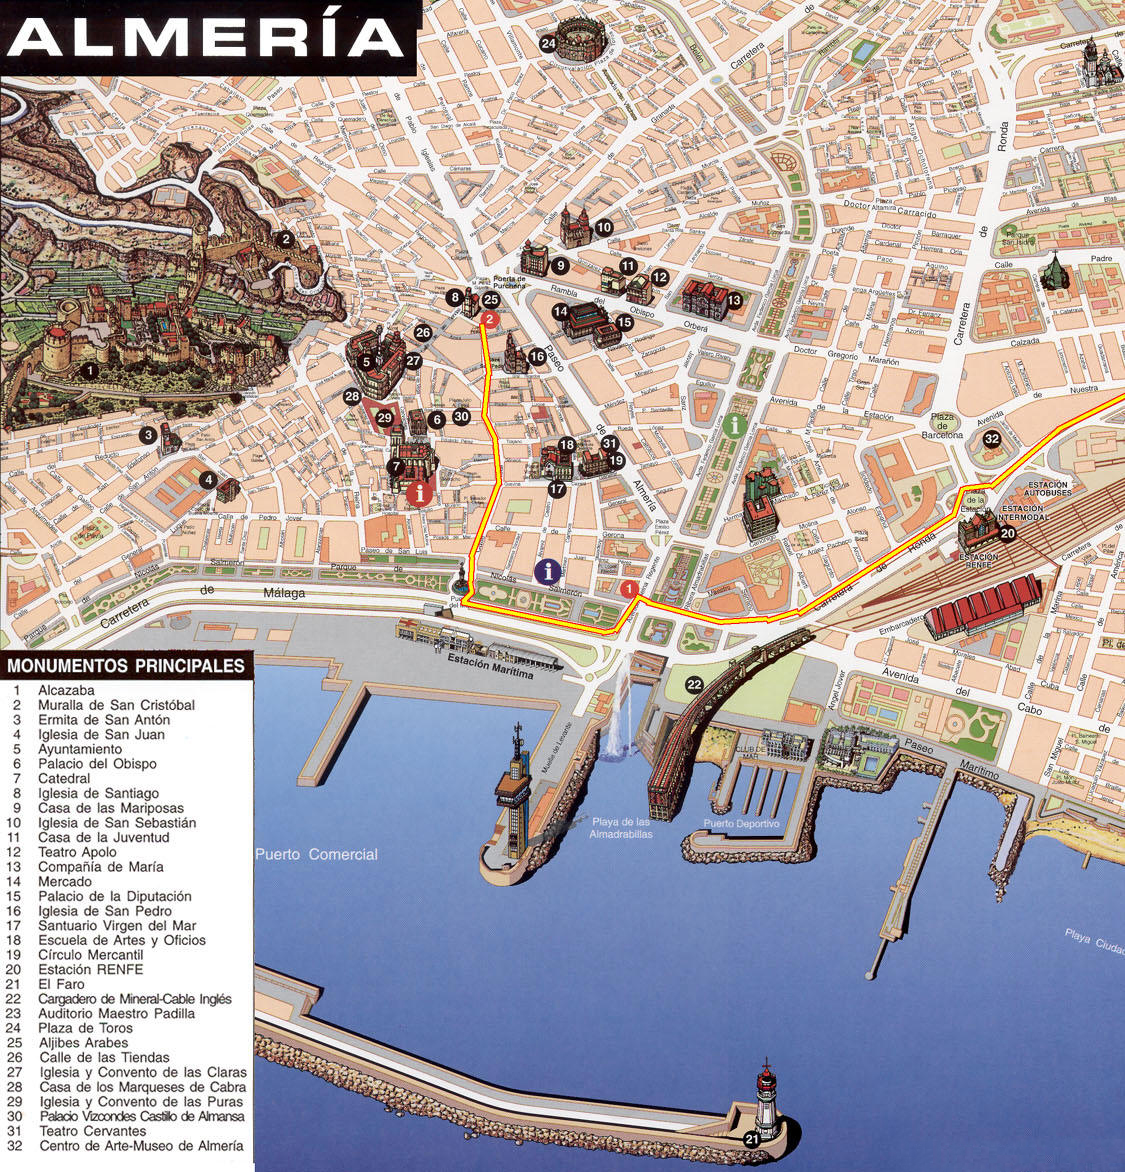 Map Of Spain Almeria.Large Almeria Maps For Free Download And Print High Resolution And